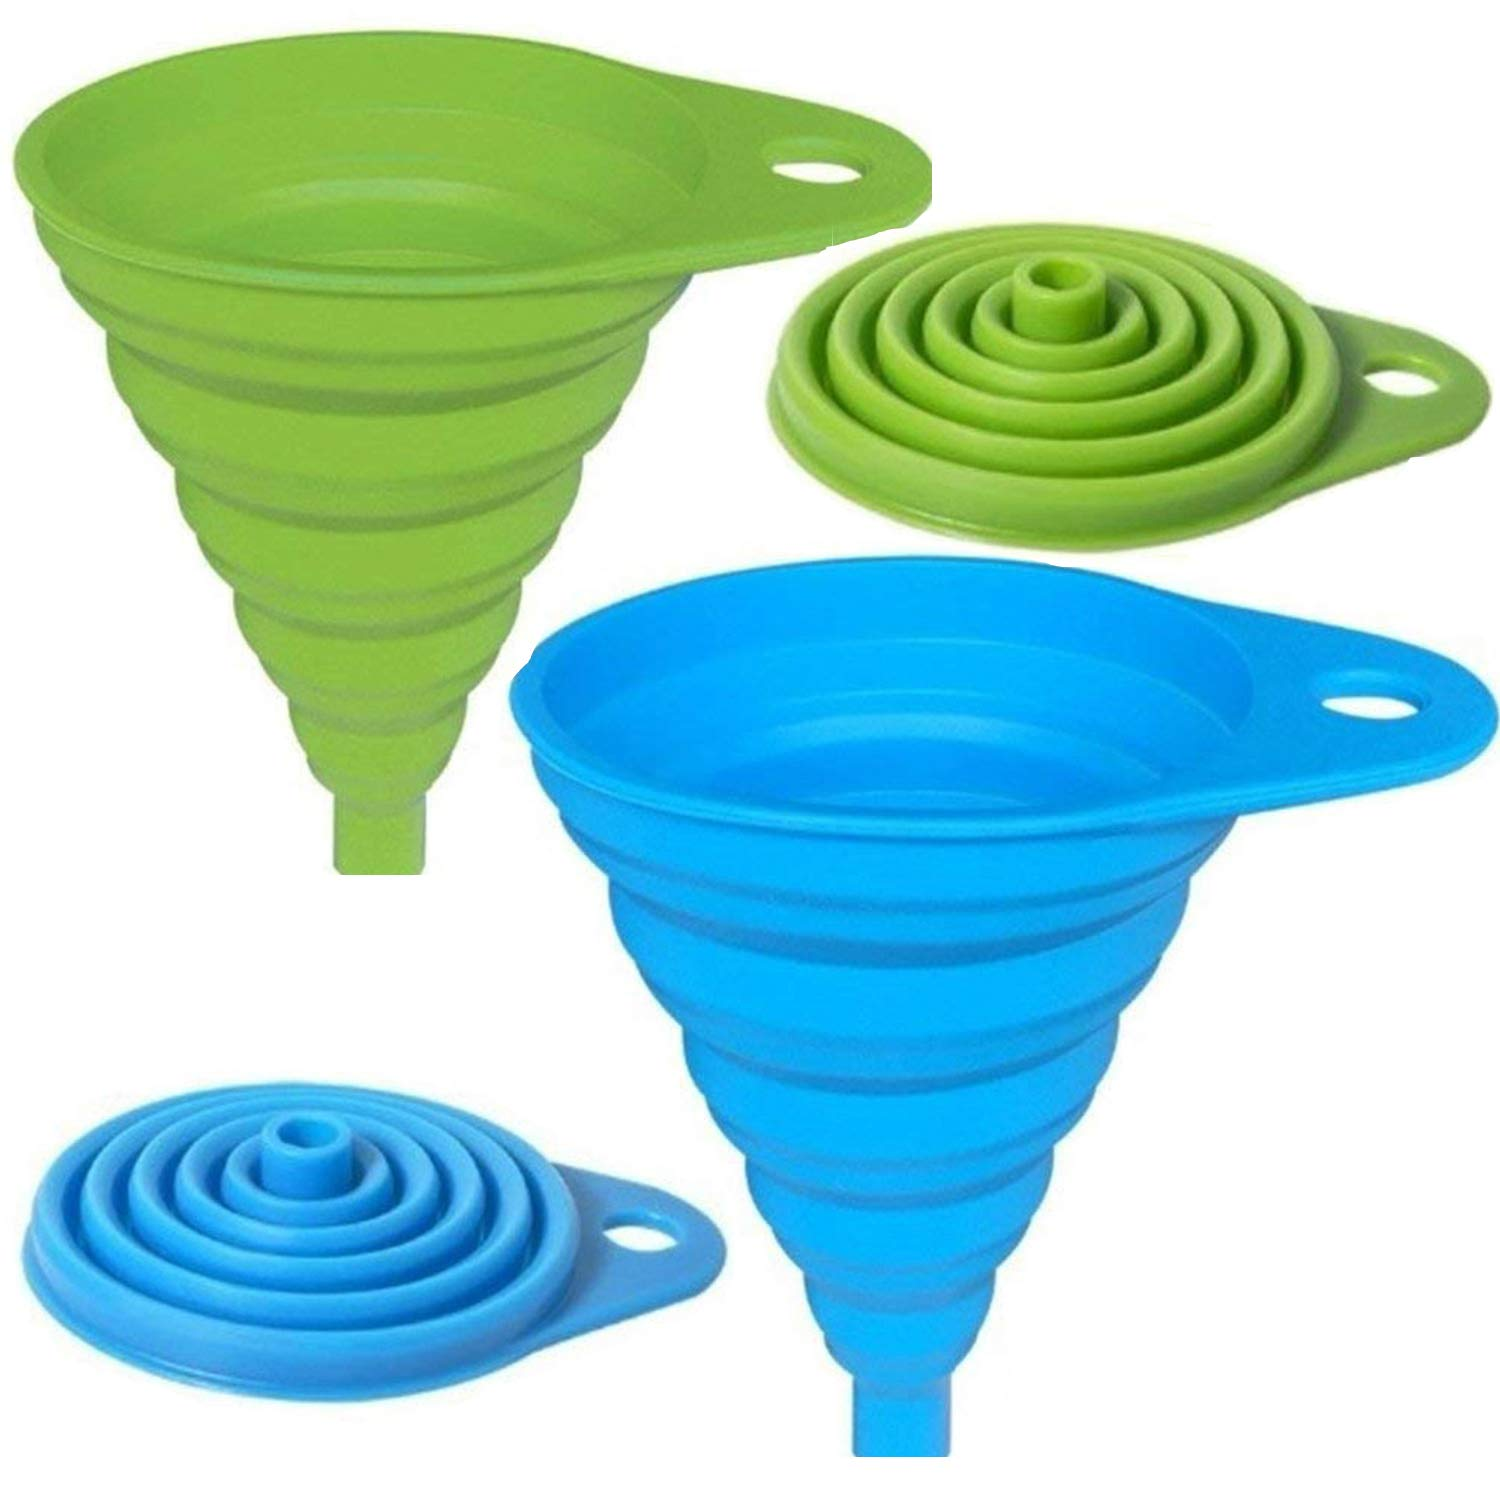 AxeSickle Silicone Collapsible Funnel 2pcs Folding Funnel for Liquid Transfer As Oil, Water, Shampoo, Sanitizer, Kitchen Tool Gadget 100% Food Grade Silicone FDA Approved.(green,Blue)